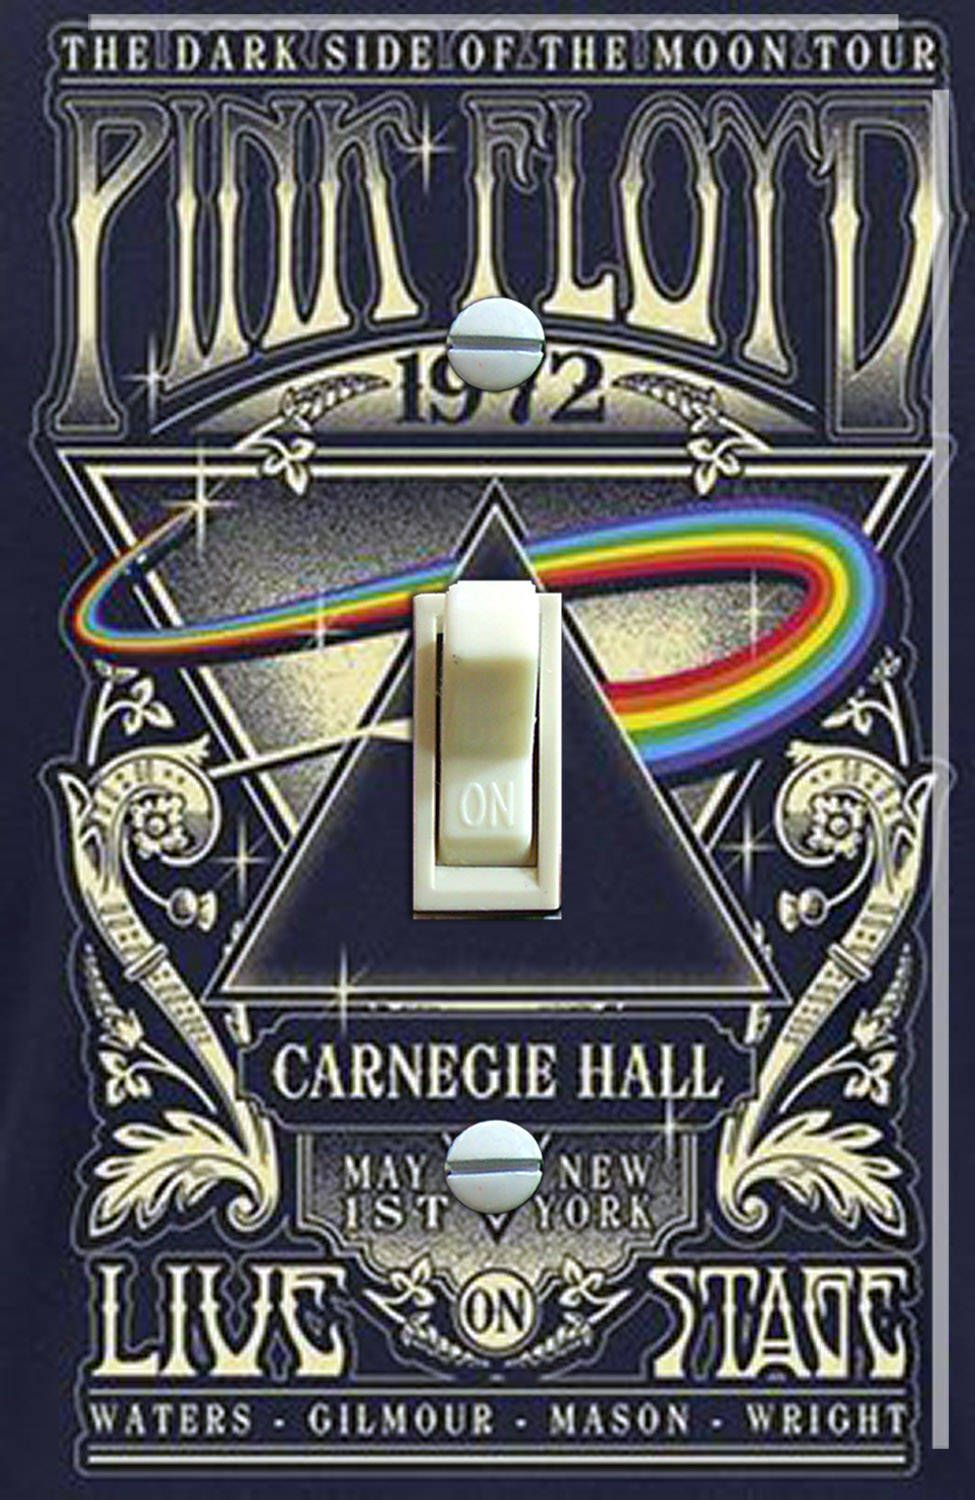 Pink Floyd 1972 Carnegie Hall Vintage Concert Poster, Switch Plate Cover, Wall Plate, Single, Home Decor